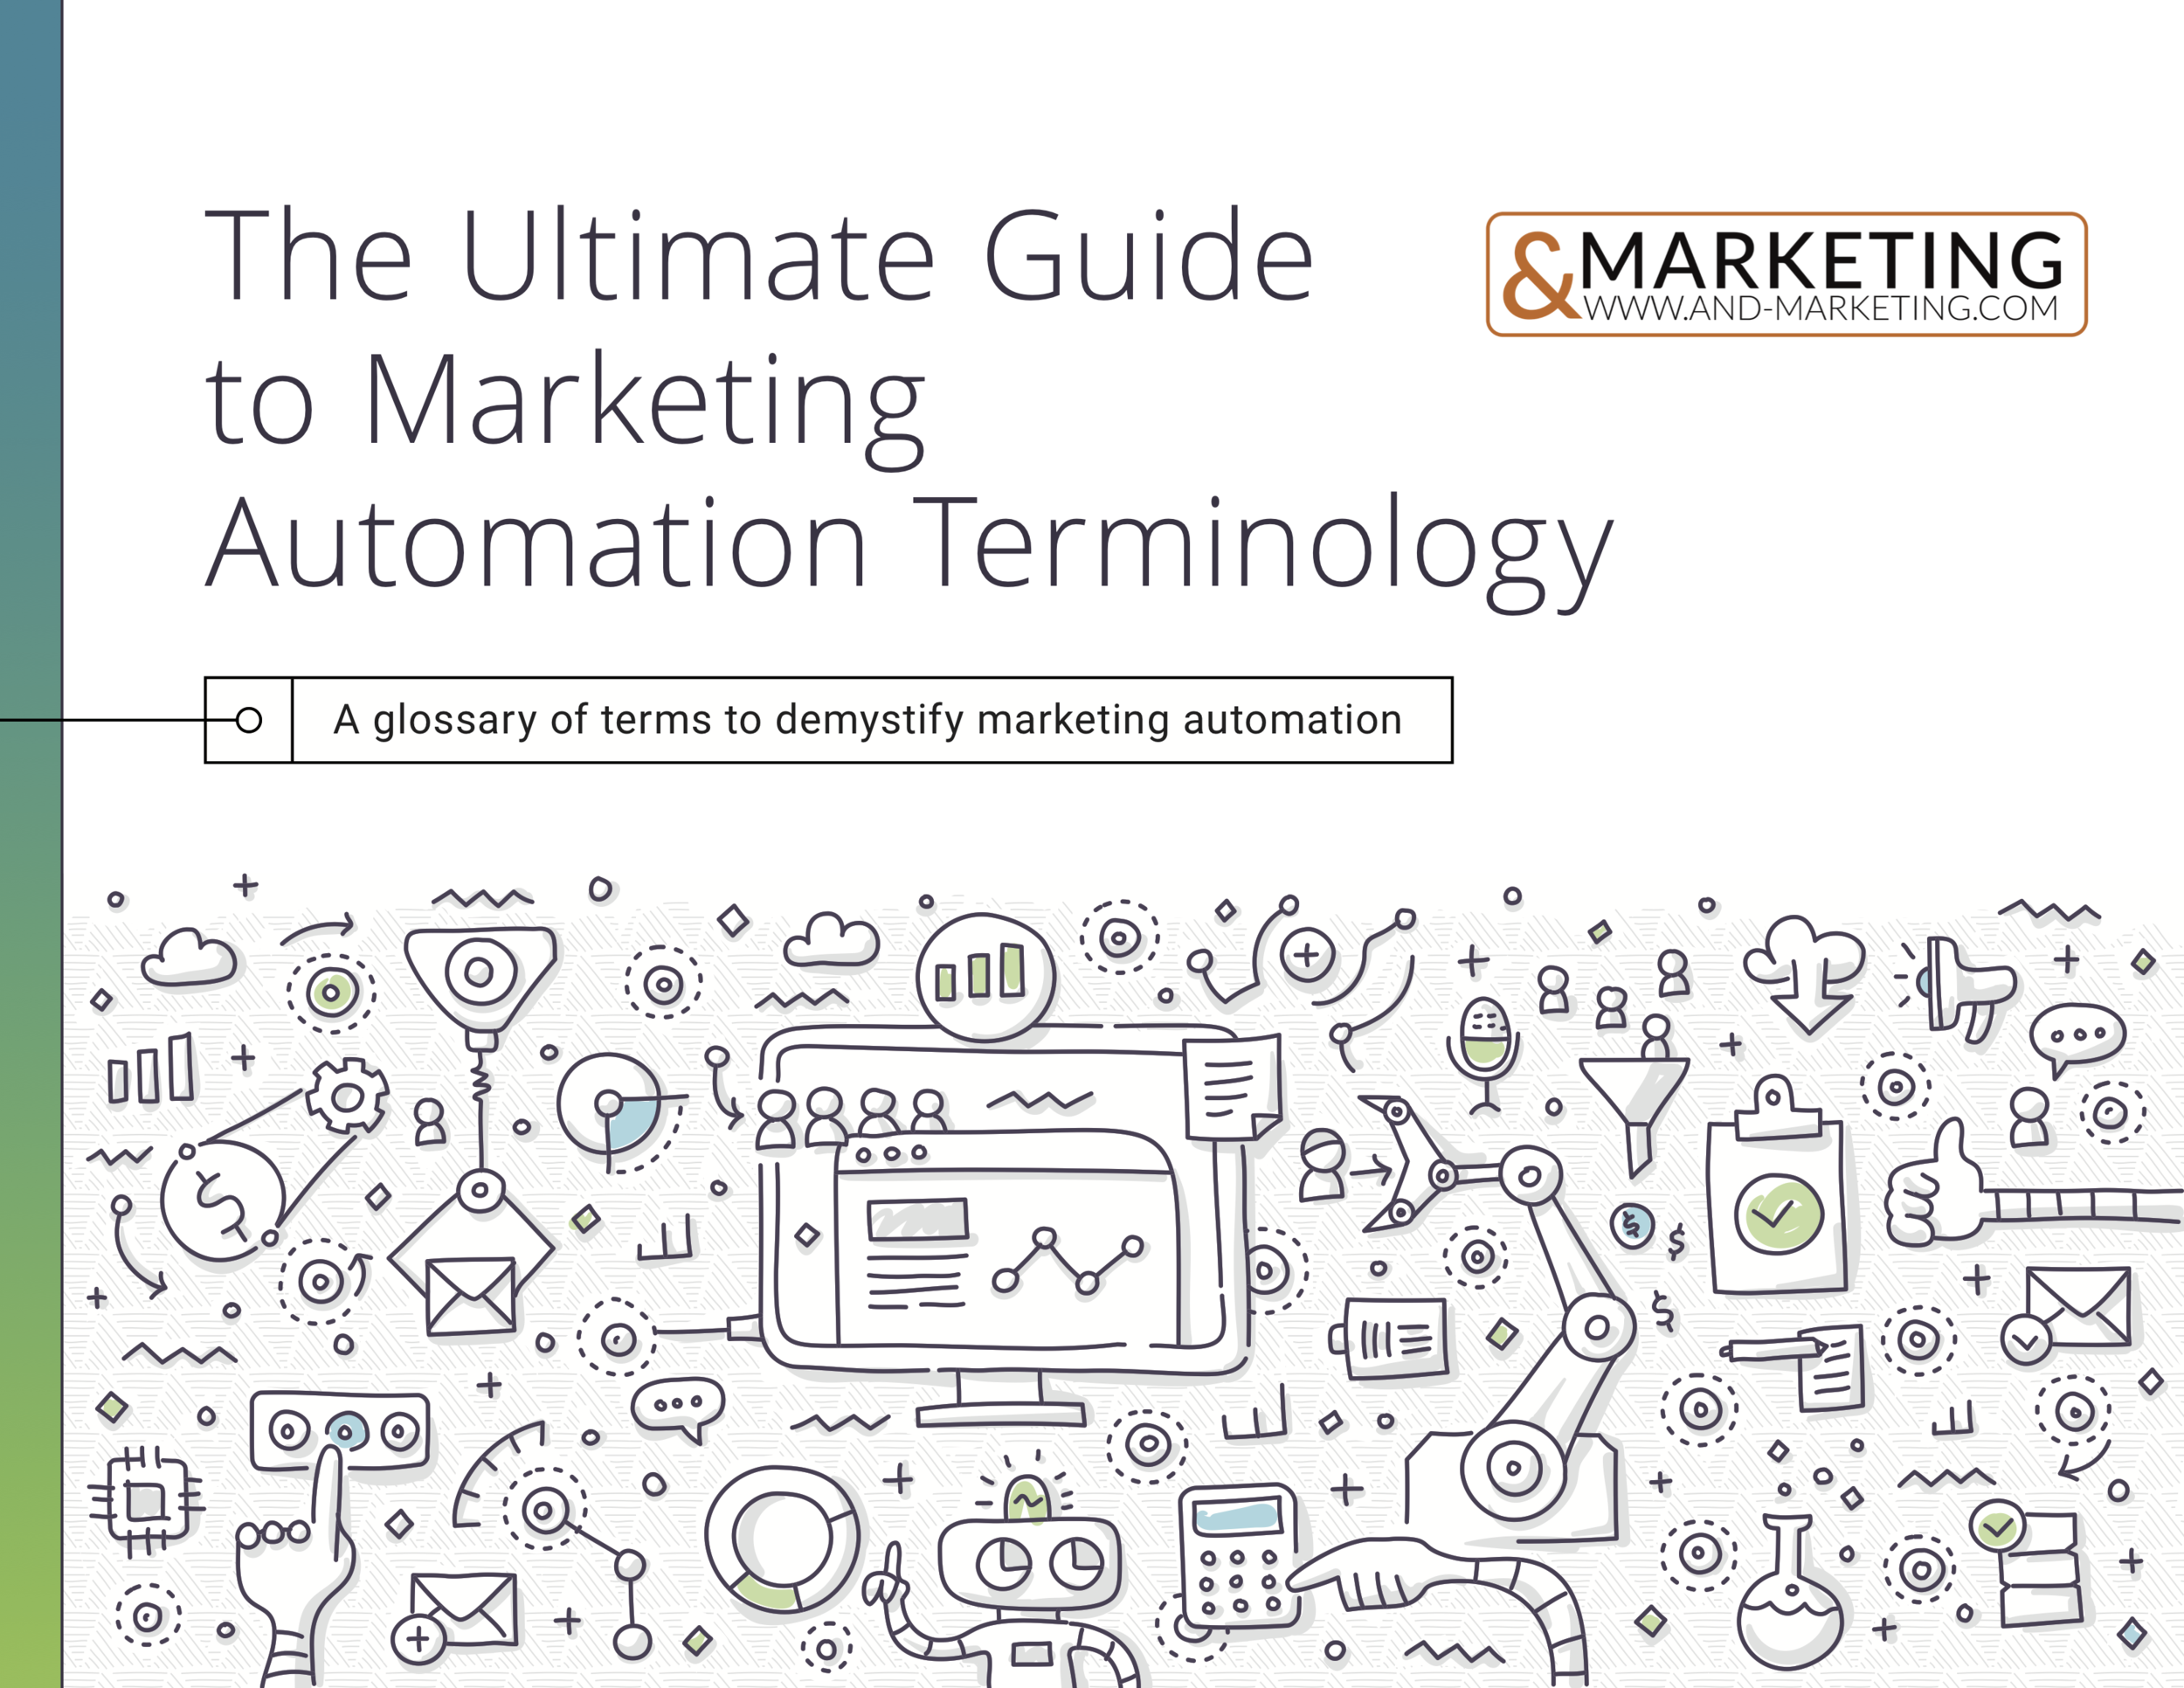 Ultimate Guide to Marketing Automation - COVER PAGE IMAGE.png